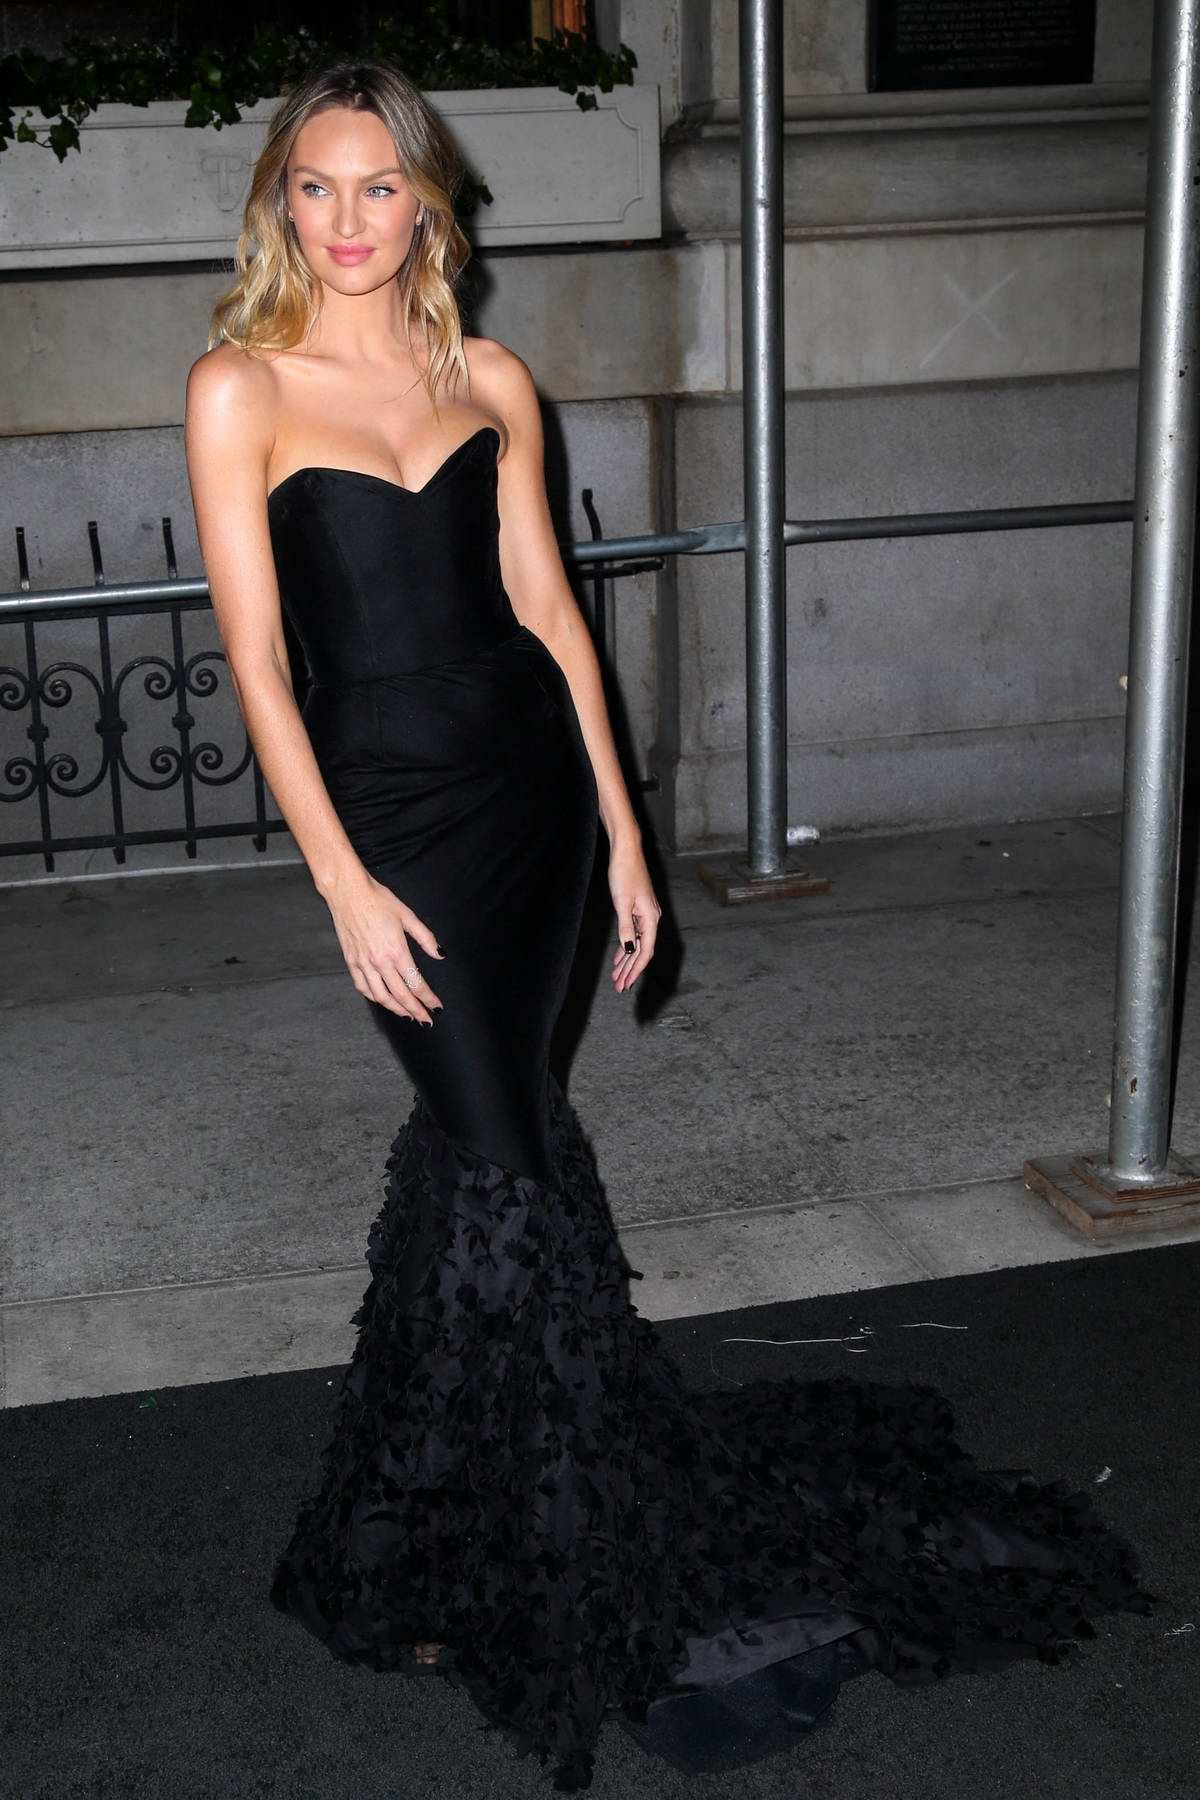 Candice Swanepoel attends Harper's Bazaar ICONS party NYFW Spring/Summer 2019 in New York City